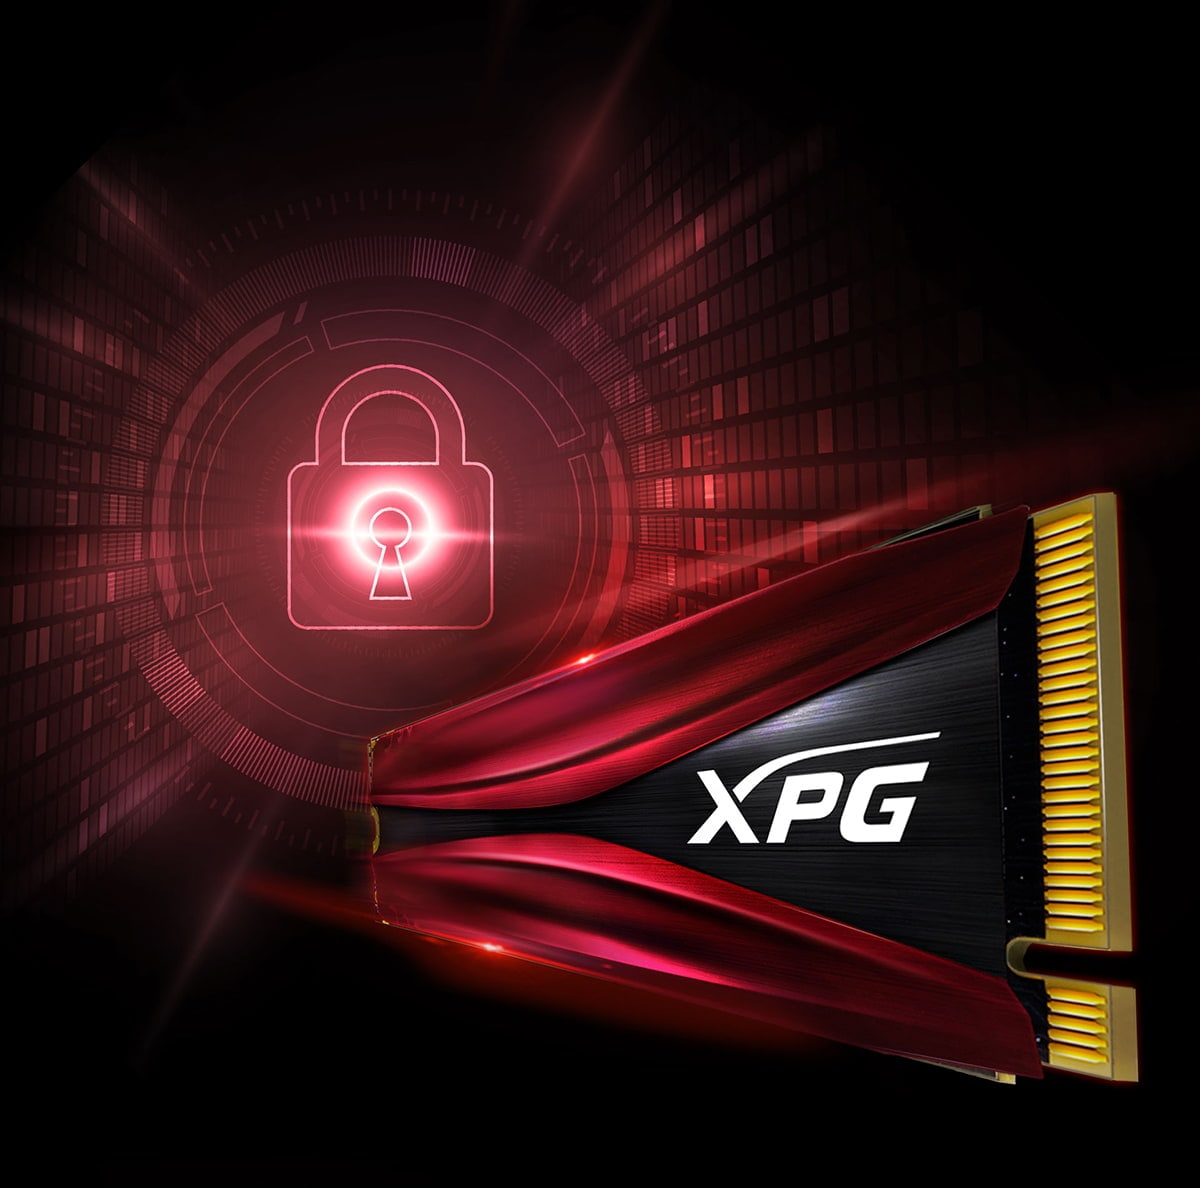 XPG-GAMMIX-S11-Pro-PCIe-Gen3x4-M-2-2280-Solid-State-Drive-Data-Integrity-Security-and-Stability